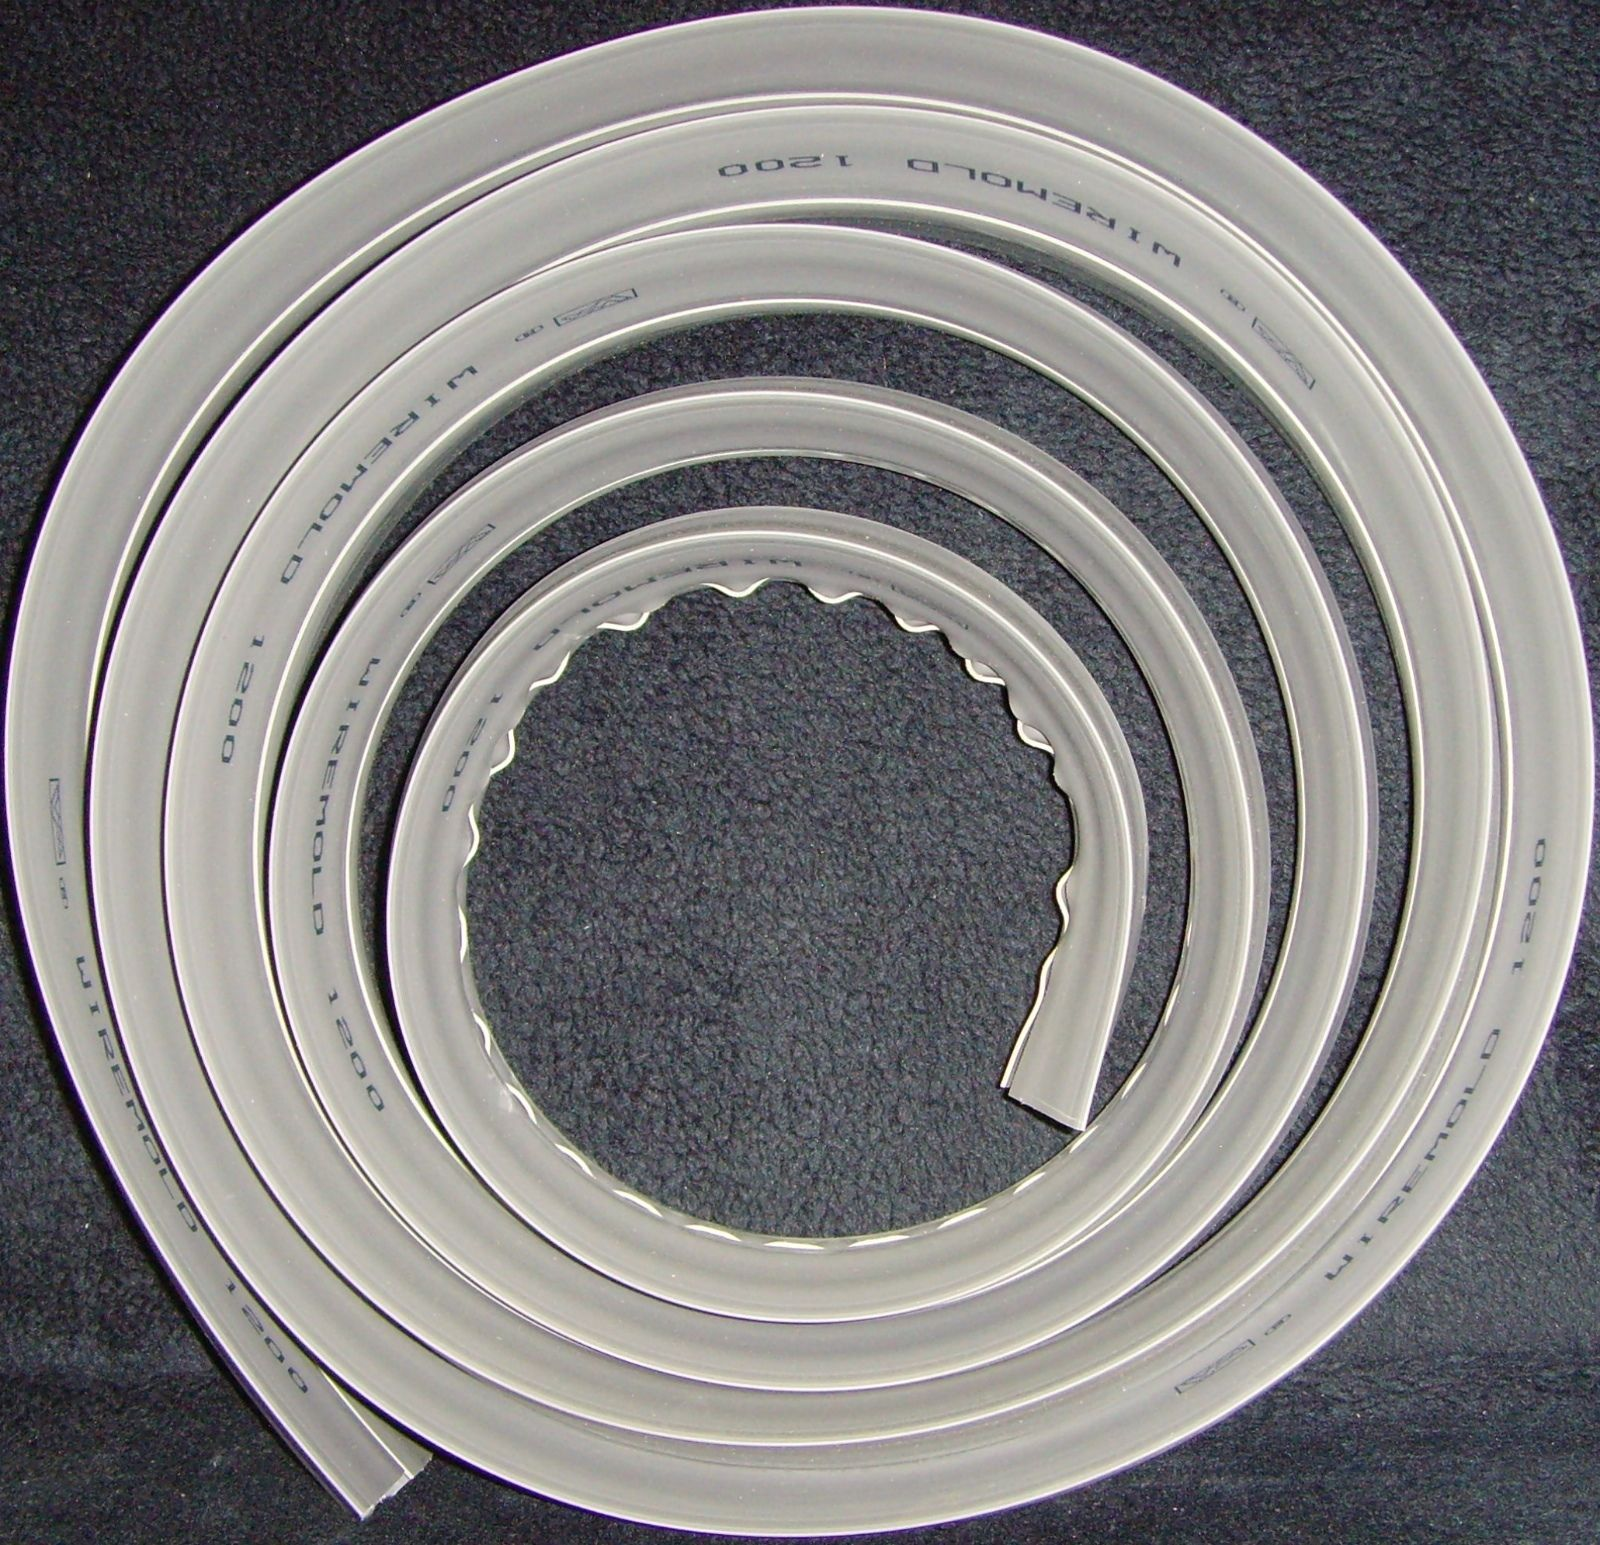 10 Feet•10 Feet•Wiremold•Legrand•Corduct•Cord Protector•10 ft•Grey•10 Feet•10 Ft